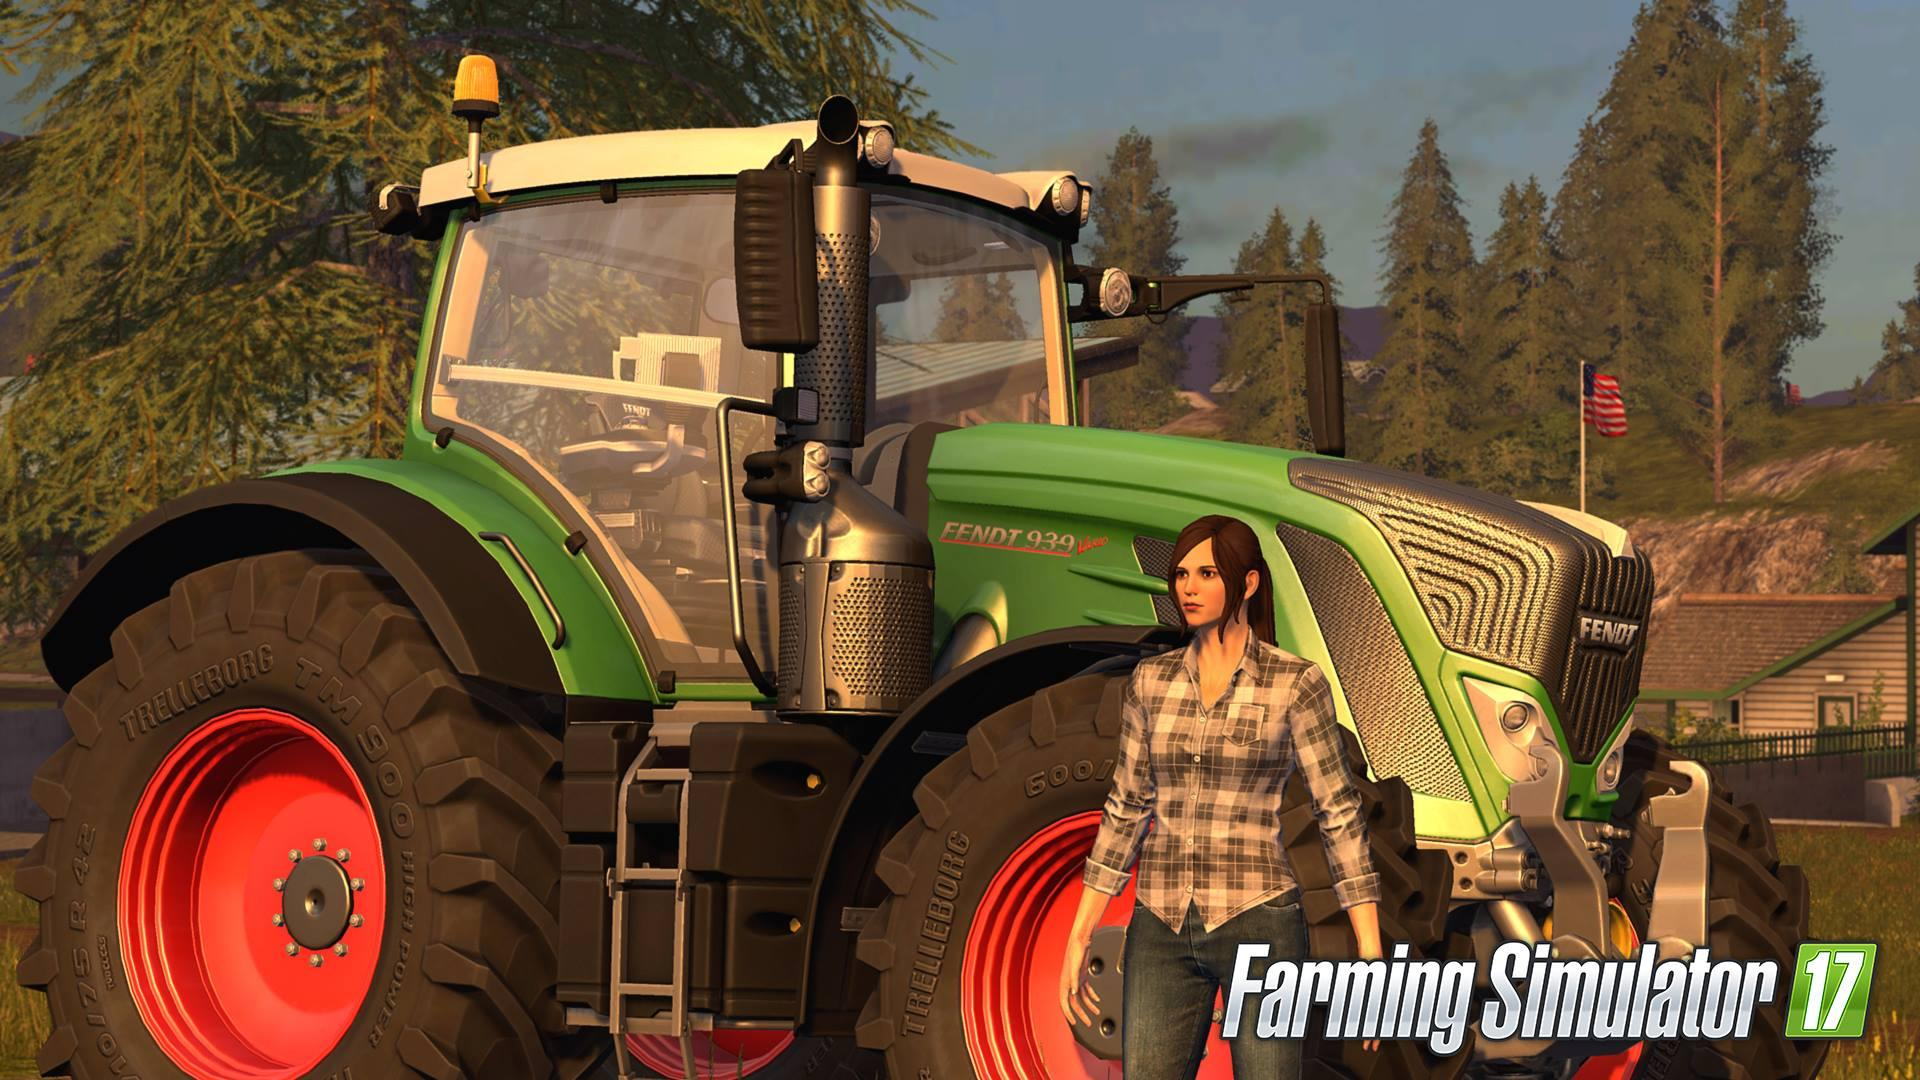 fs17-offers-the-option-to-play-as-a-female-farmer_1